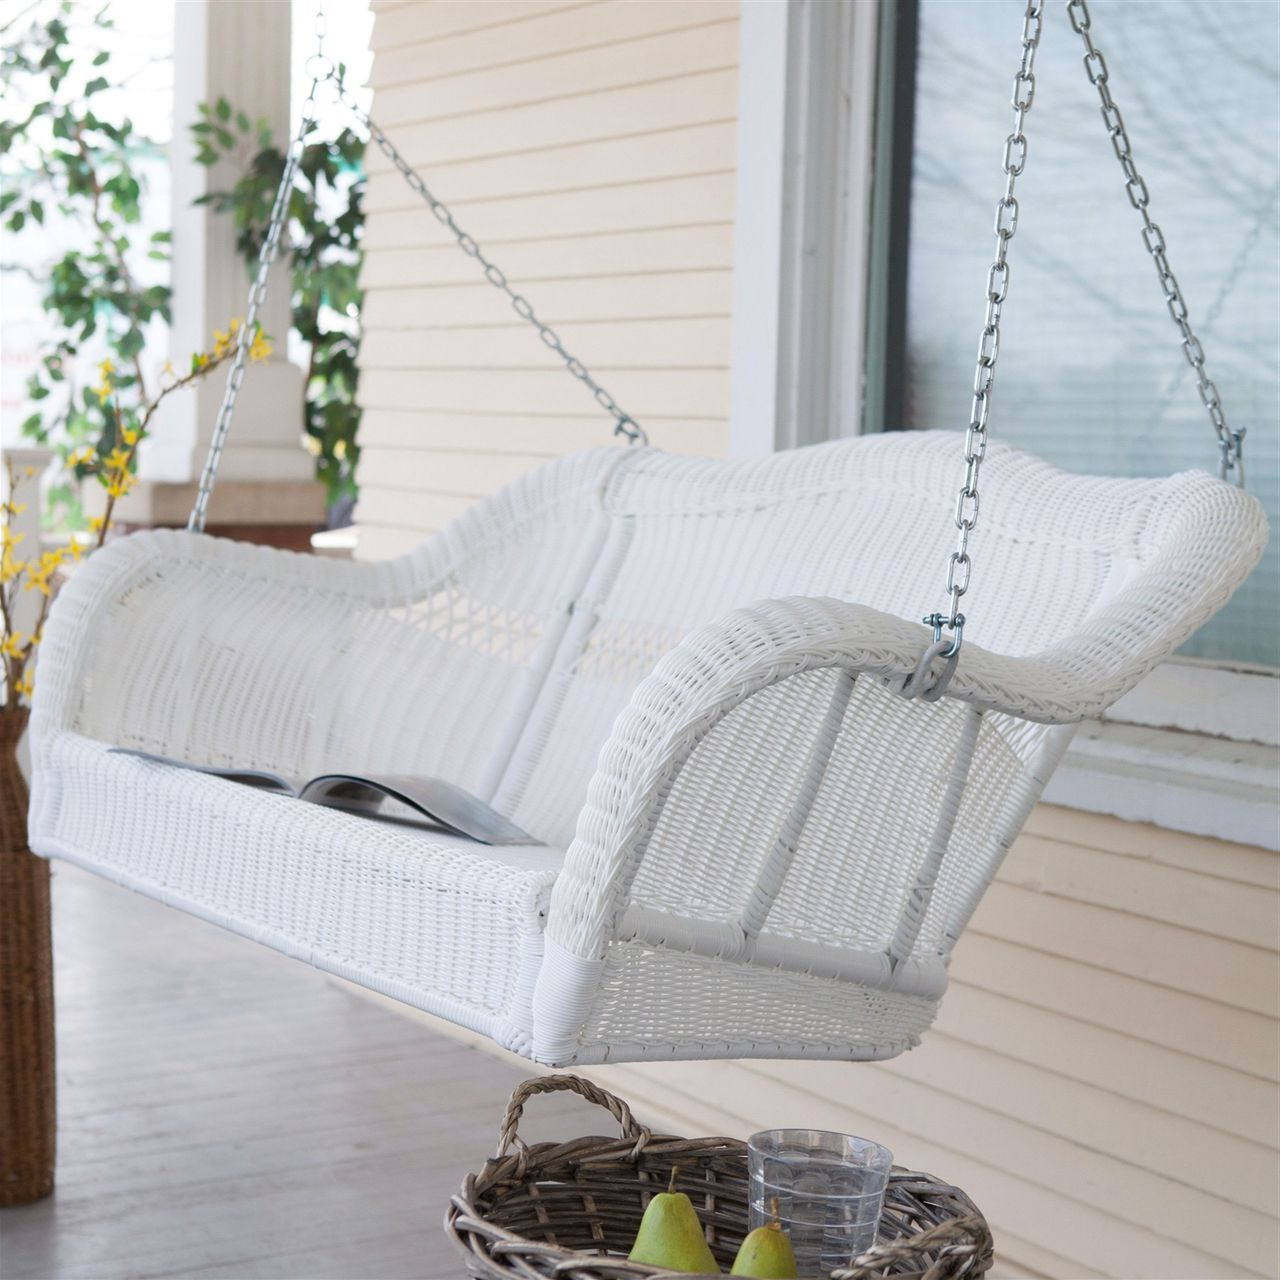 White Resin Wicker Porch Swing, Hanging Chain – 600 Lb Pertaining To Most Recently Released Porch Swings With Chain (View 10 of 30)